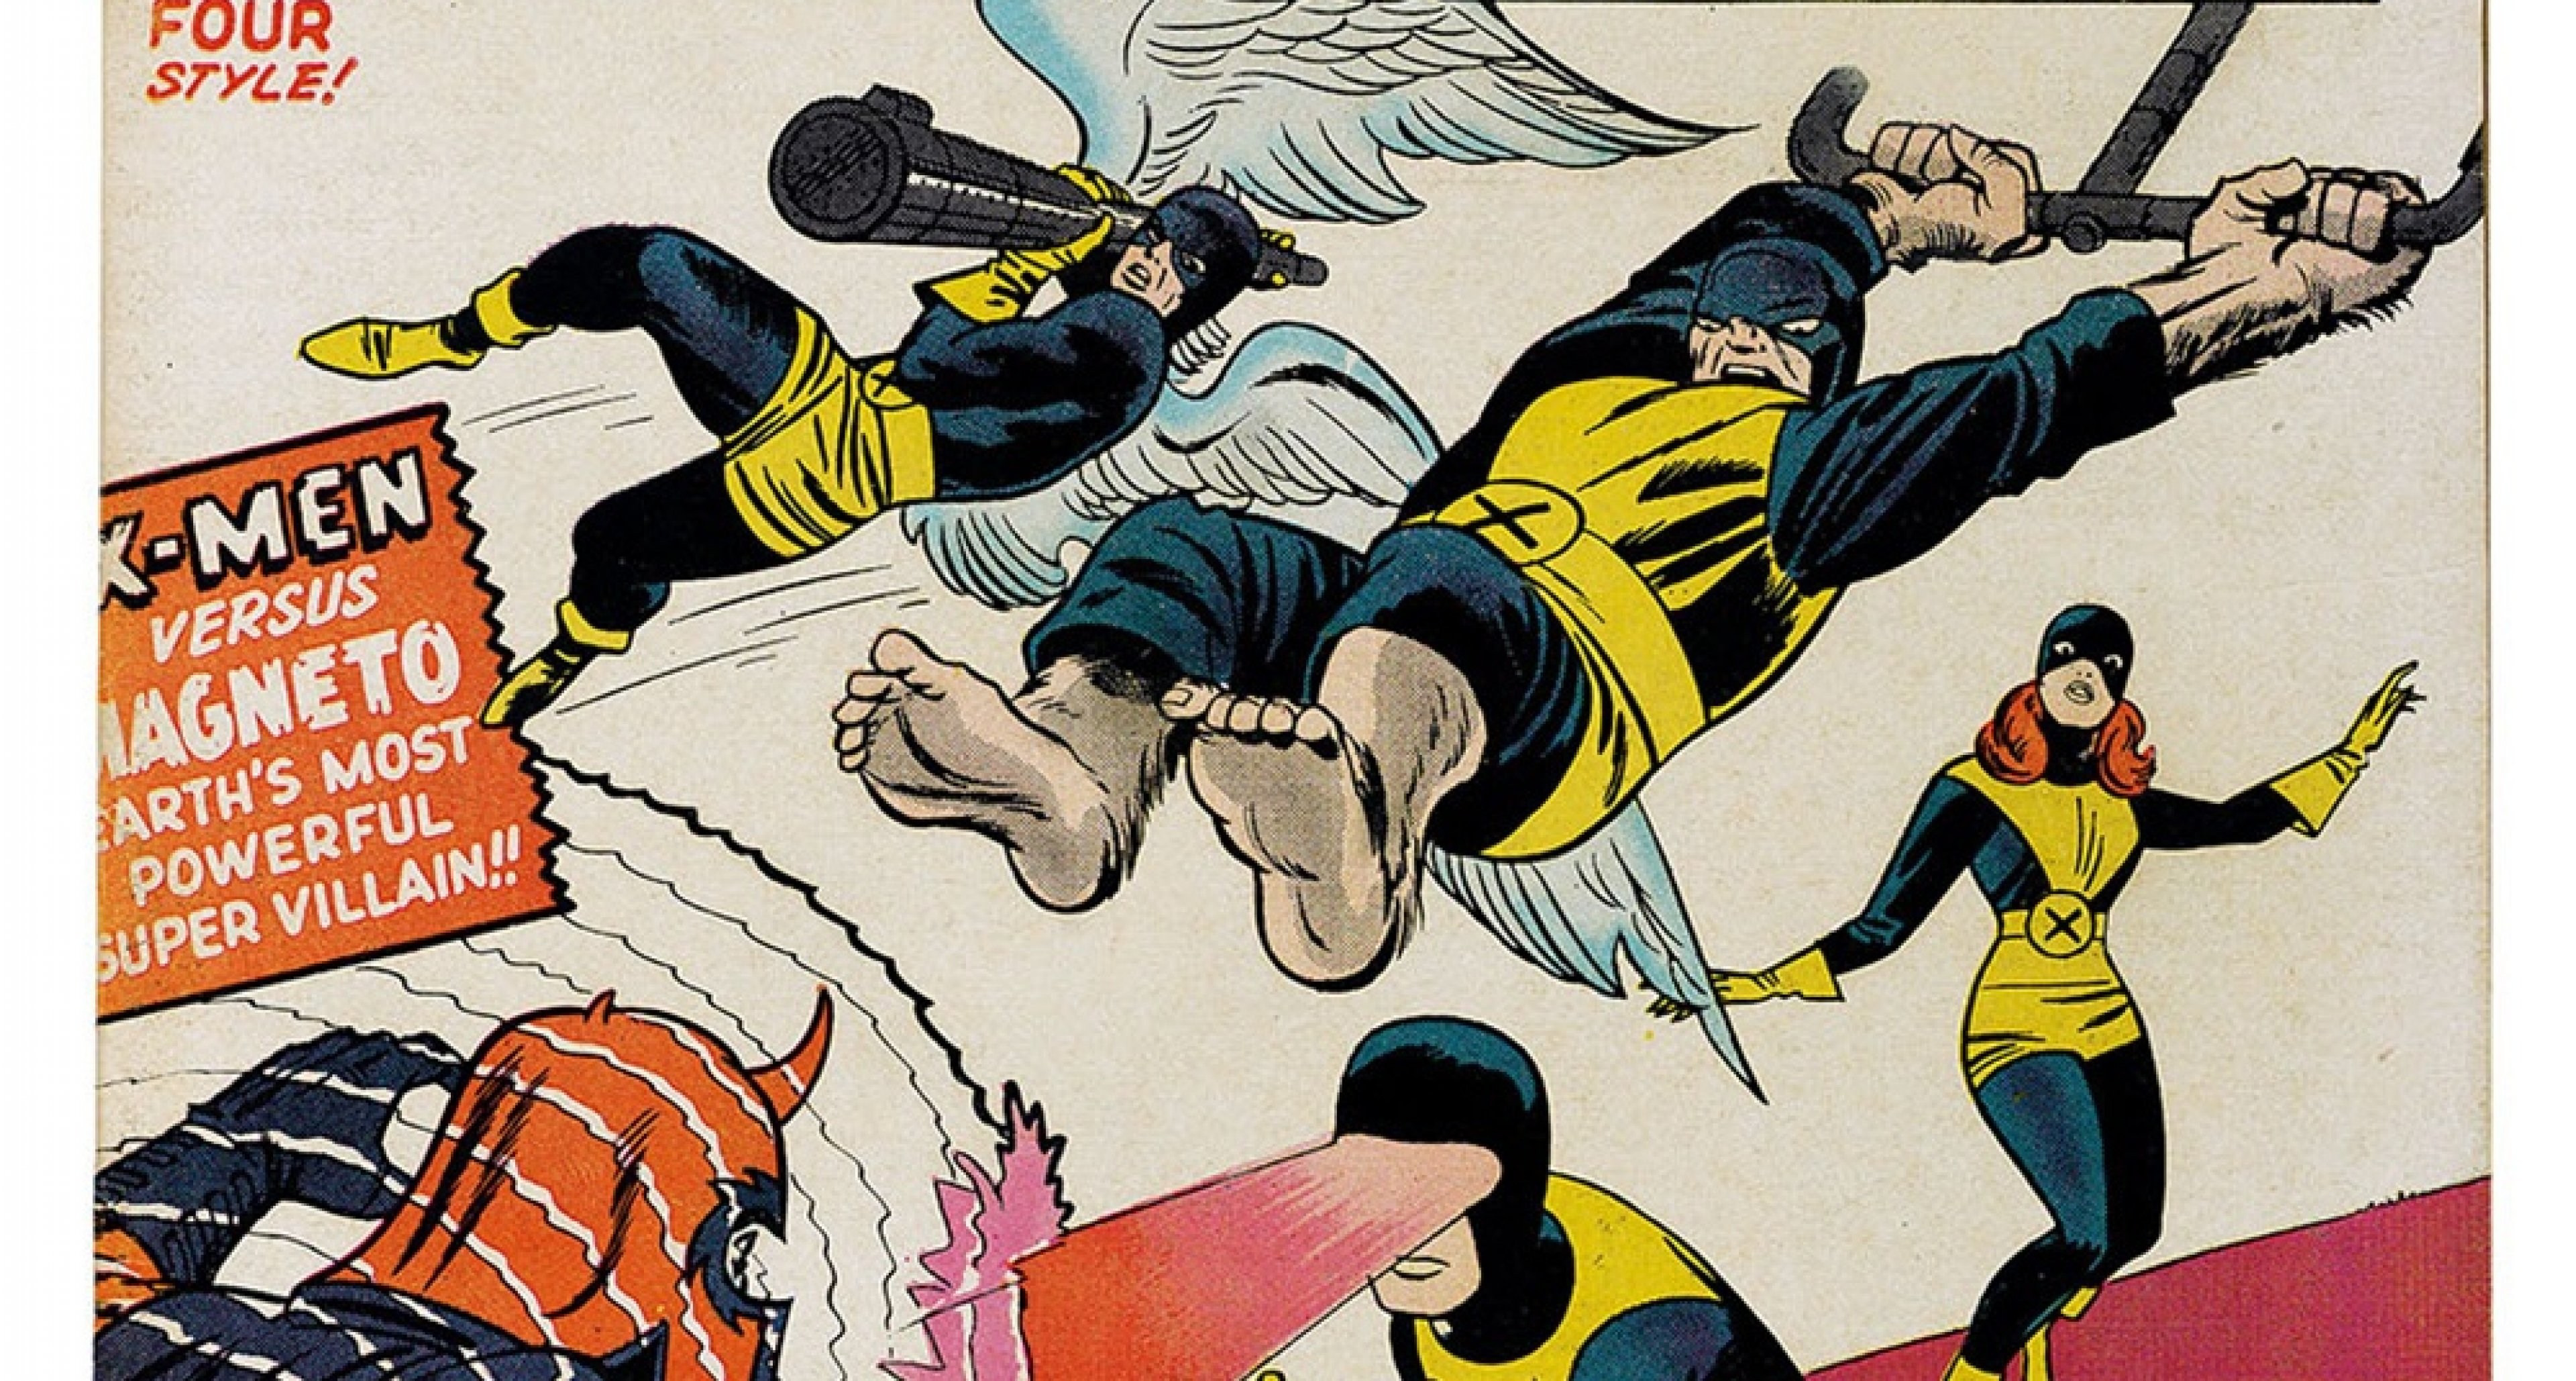 The first issue of The X-Men (September 1963), with a cover by Jack Kirby and Sol Brodsky. / TM & © 2018 Marvel Entertainment, LLC